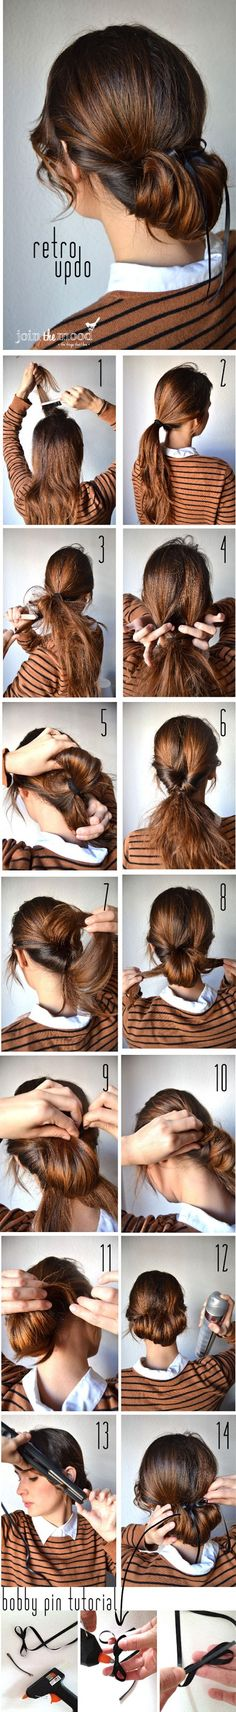 Make A Retro UpDo | hairstyles tutorial